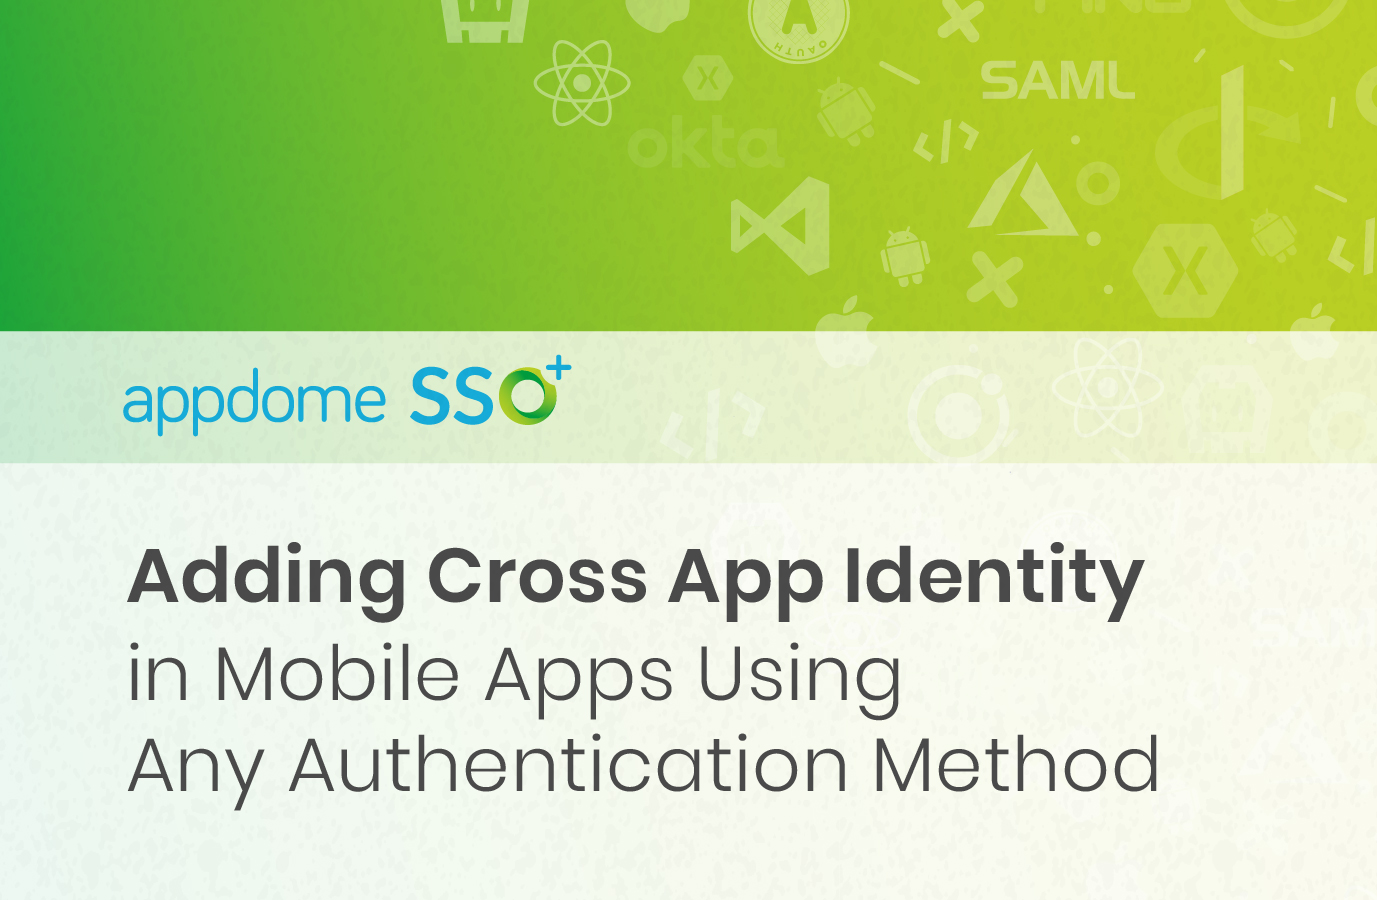 Appdome SSO cross app ID for shared authentication state across mobile apps